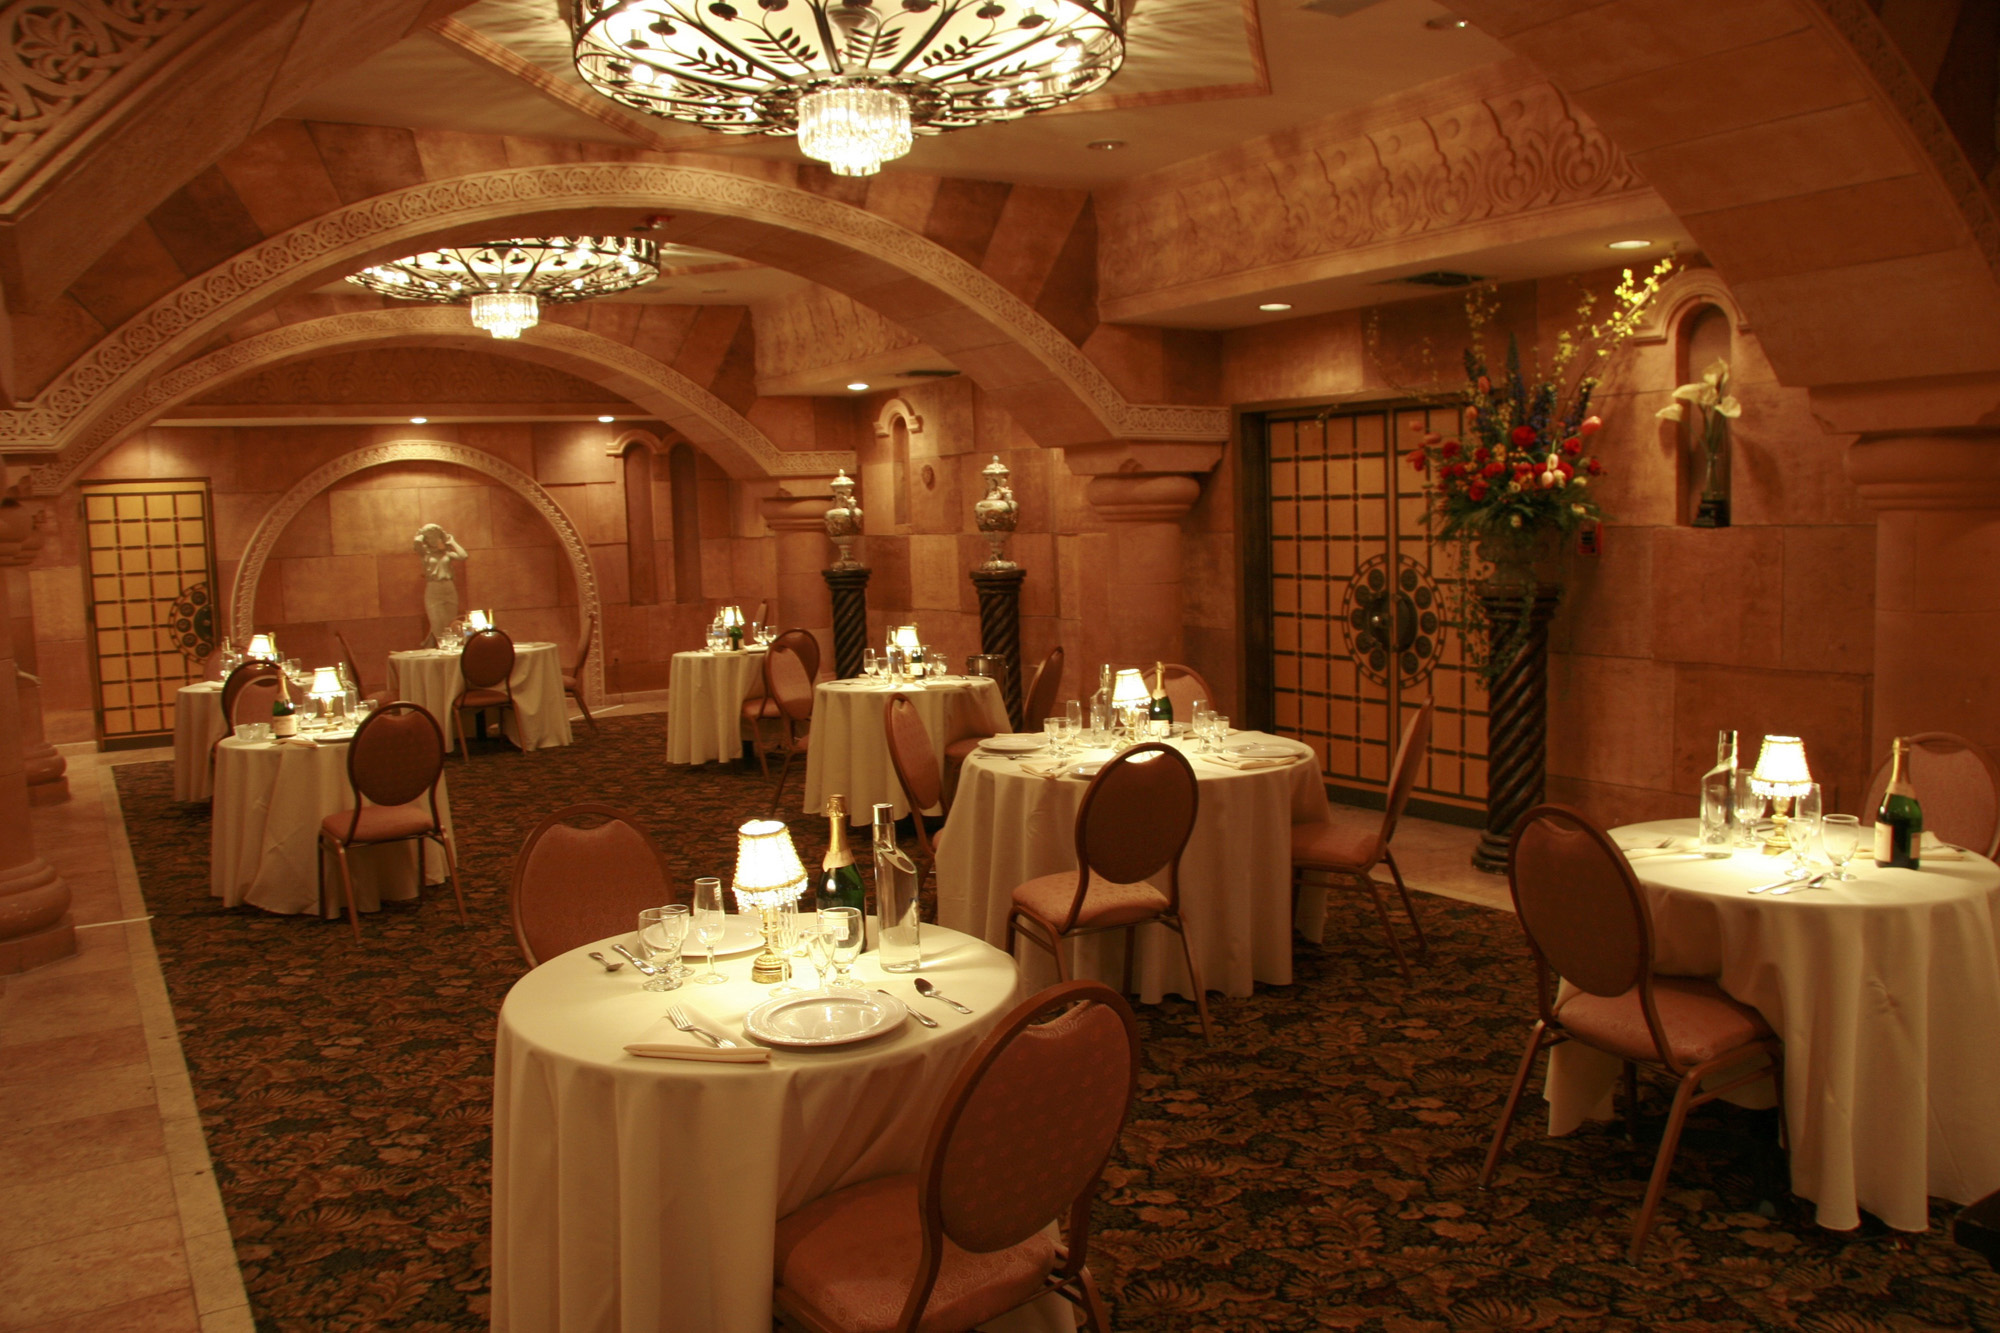 Small event wedding venue in n hollywood le foyer lounge - Small event spaces los angeles ideas ...